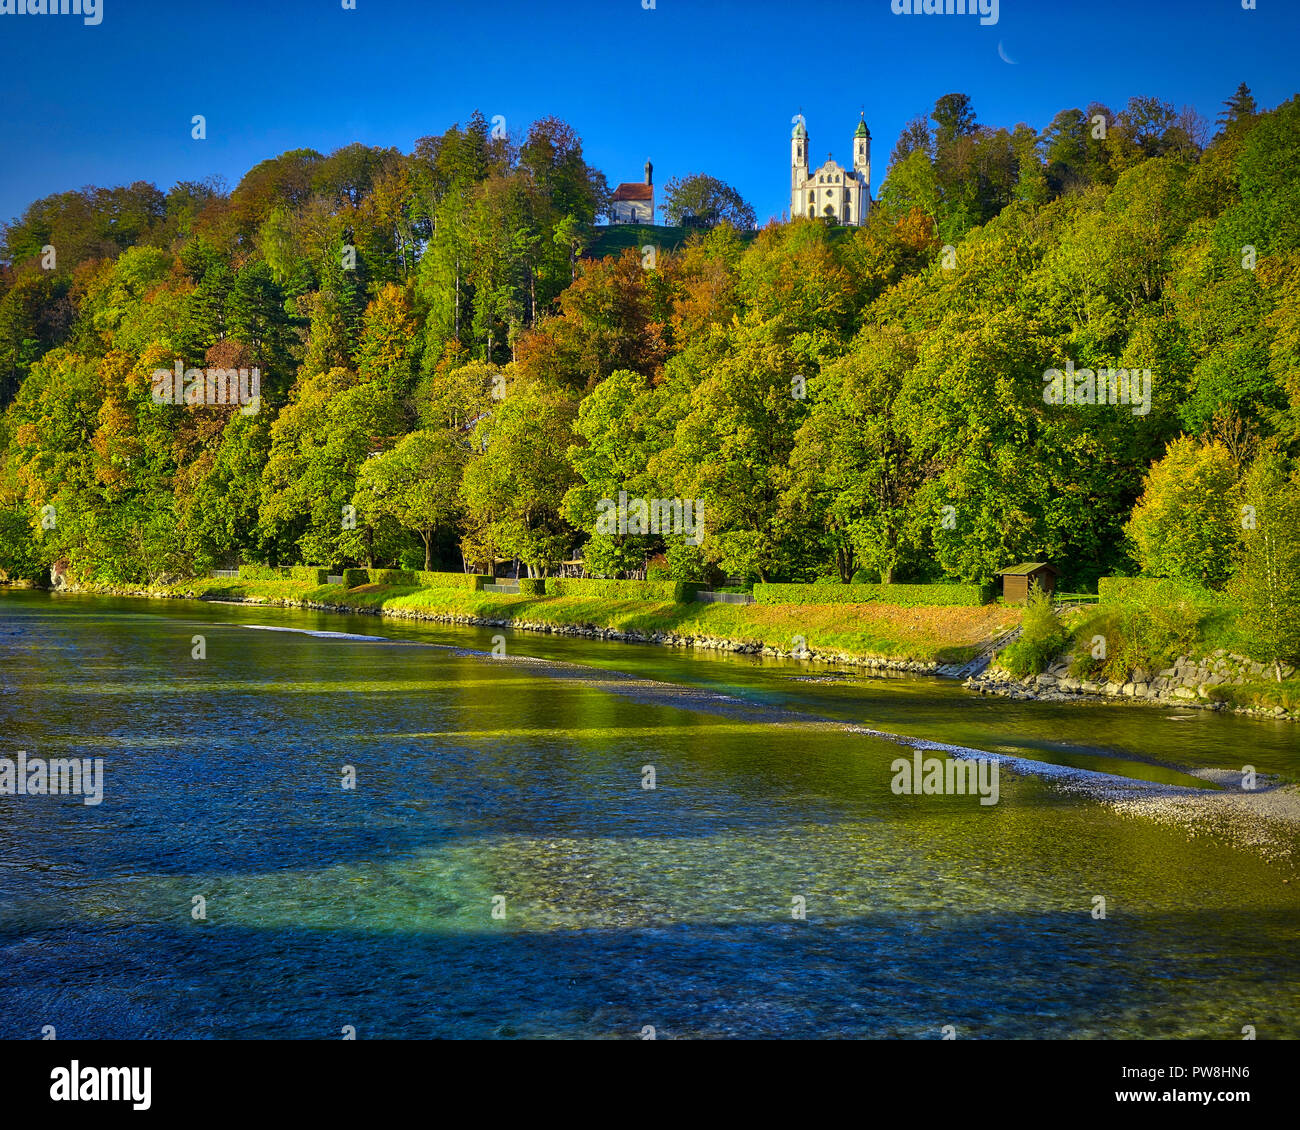 DE - BAVARIA: River Isar and Kalvarienberg at Bad Toelz  (HDR-image) - Stock Image